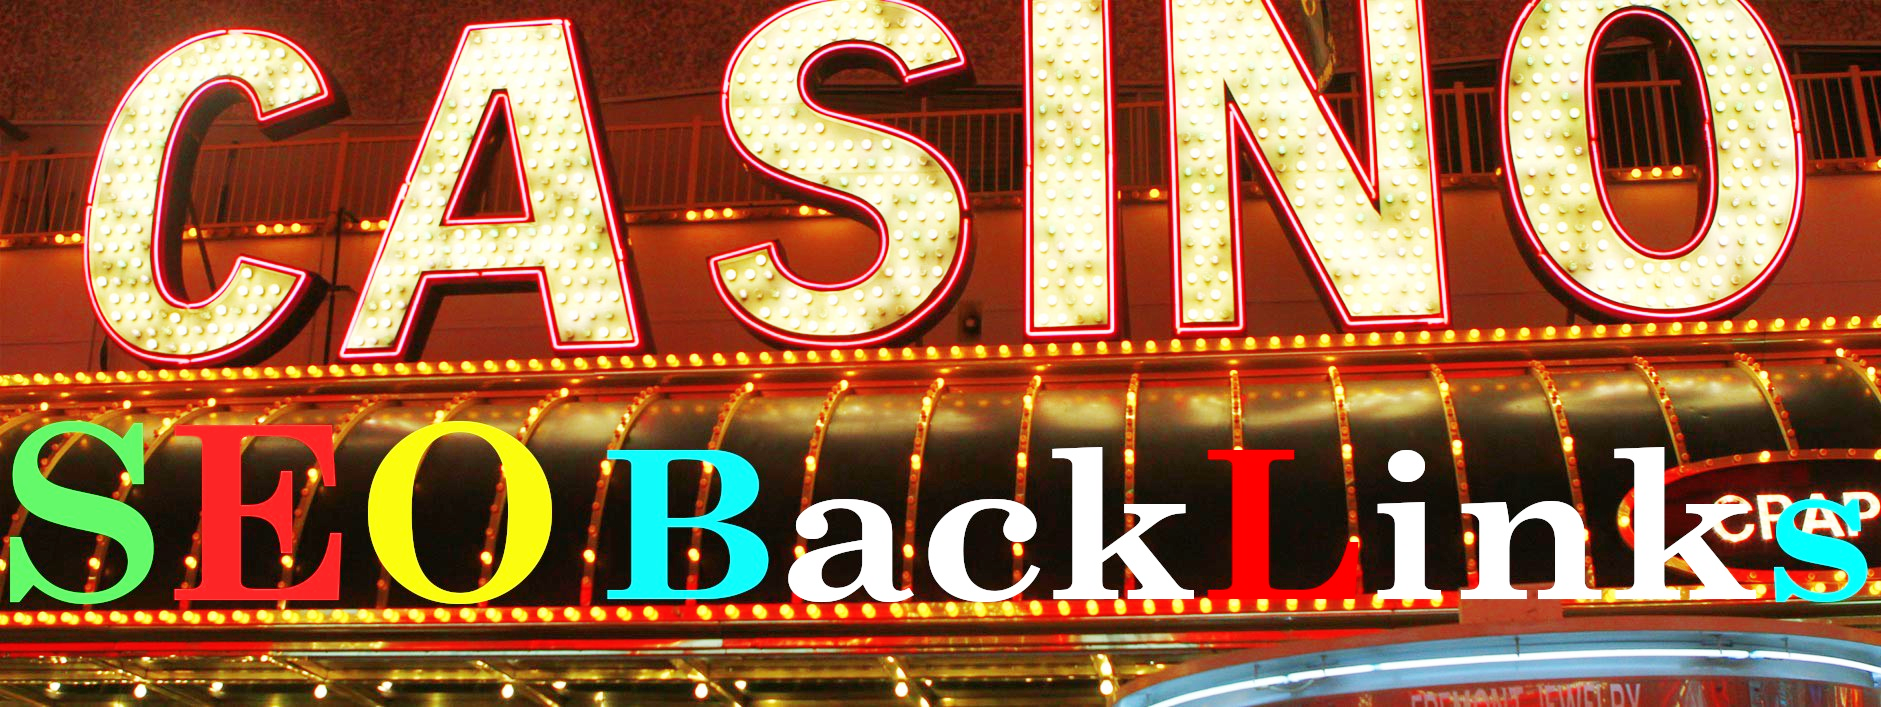 GET 400+ PRIMIUM CASINO PBN Backlink greeting page web 2.0 with HIGH DA/PA/CF/TF WITH UNIQUE WEBSITE